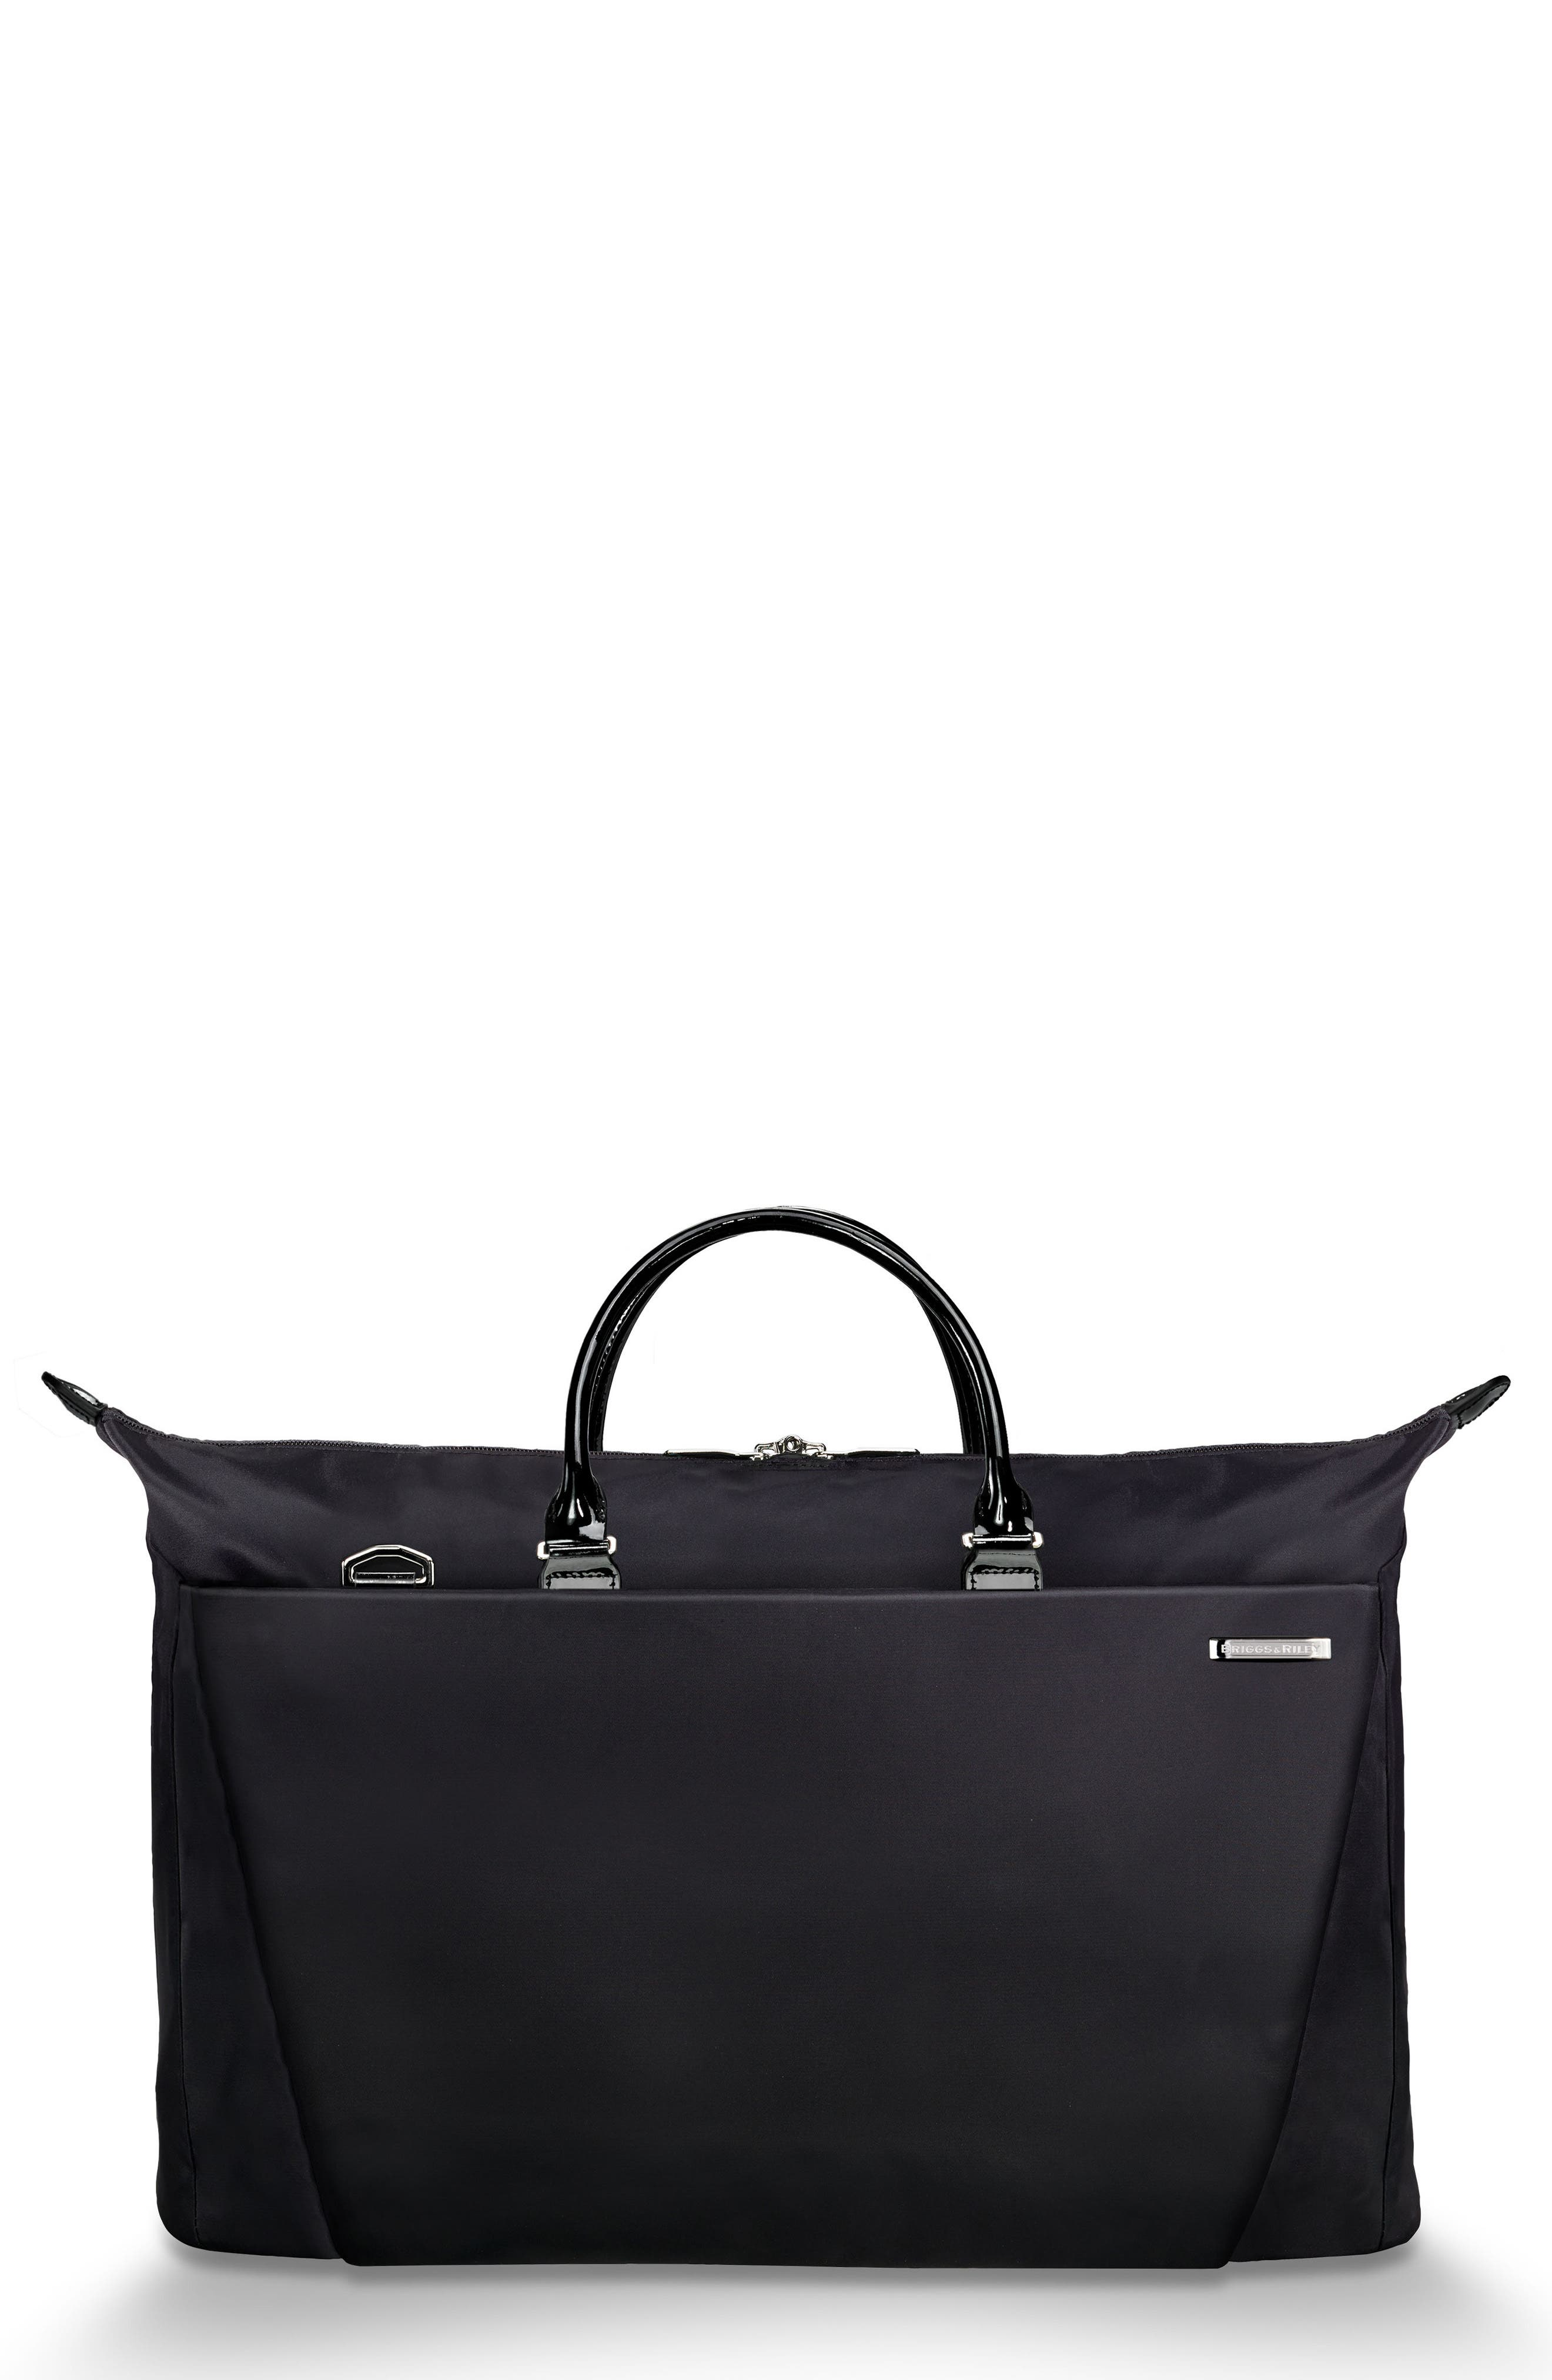 Sympatico Duffel Bag,                         Main,                         color, Onyx